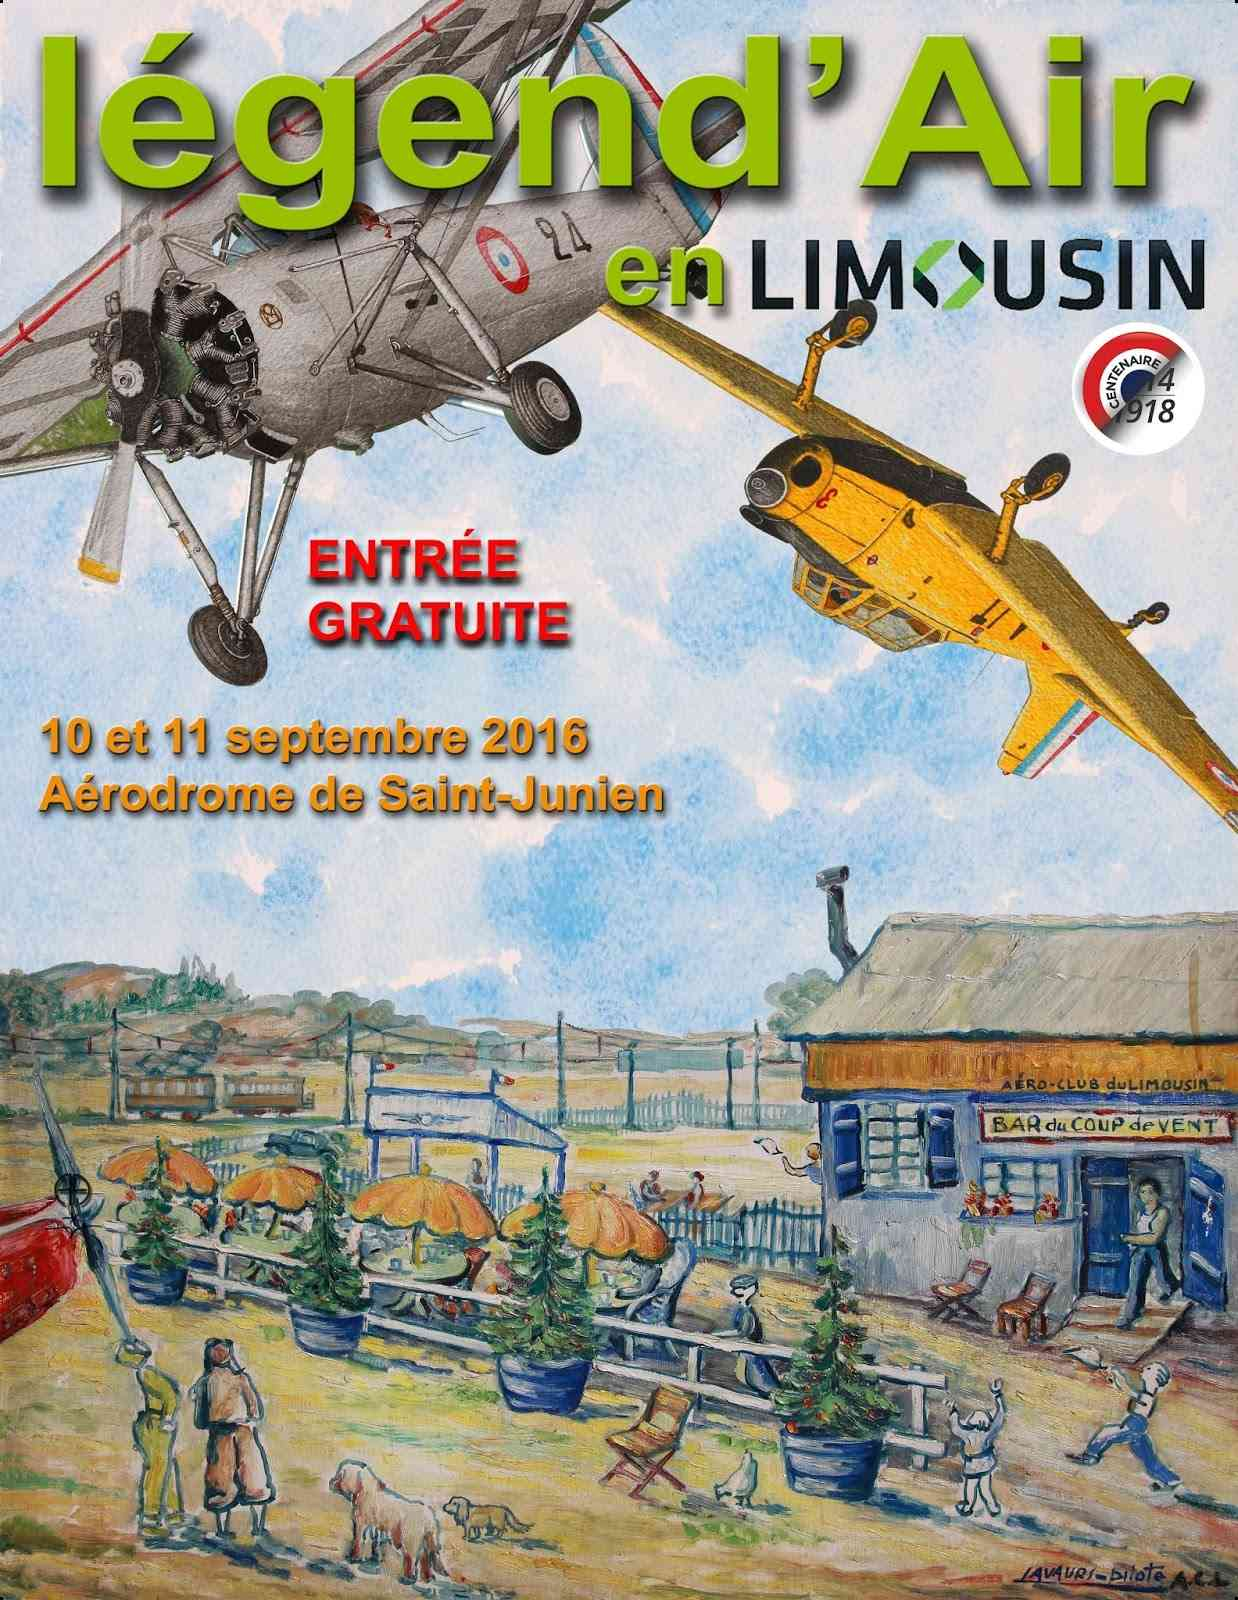 Légend'Air en Limousin 2016,Aérodrome de Saint Junien, Meeting Aerien 2016,Airshow 2016, French Airshow 2016